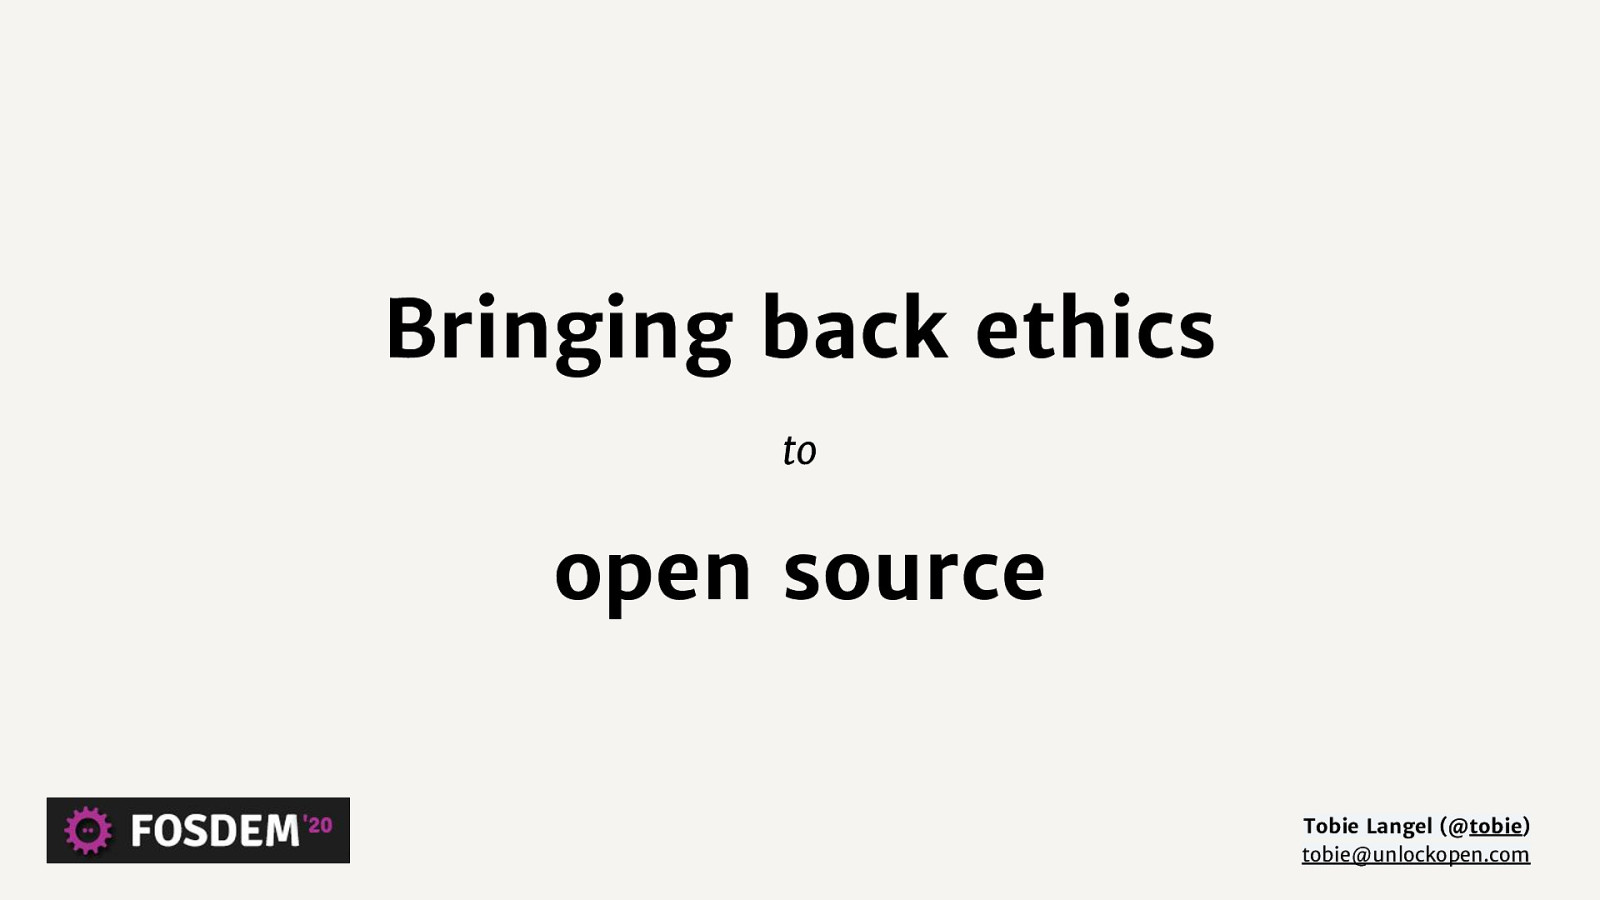 Bringing back ethics to open source